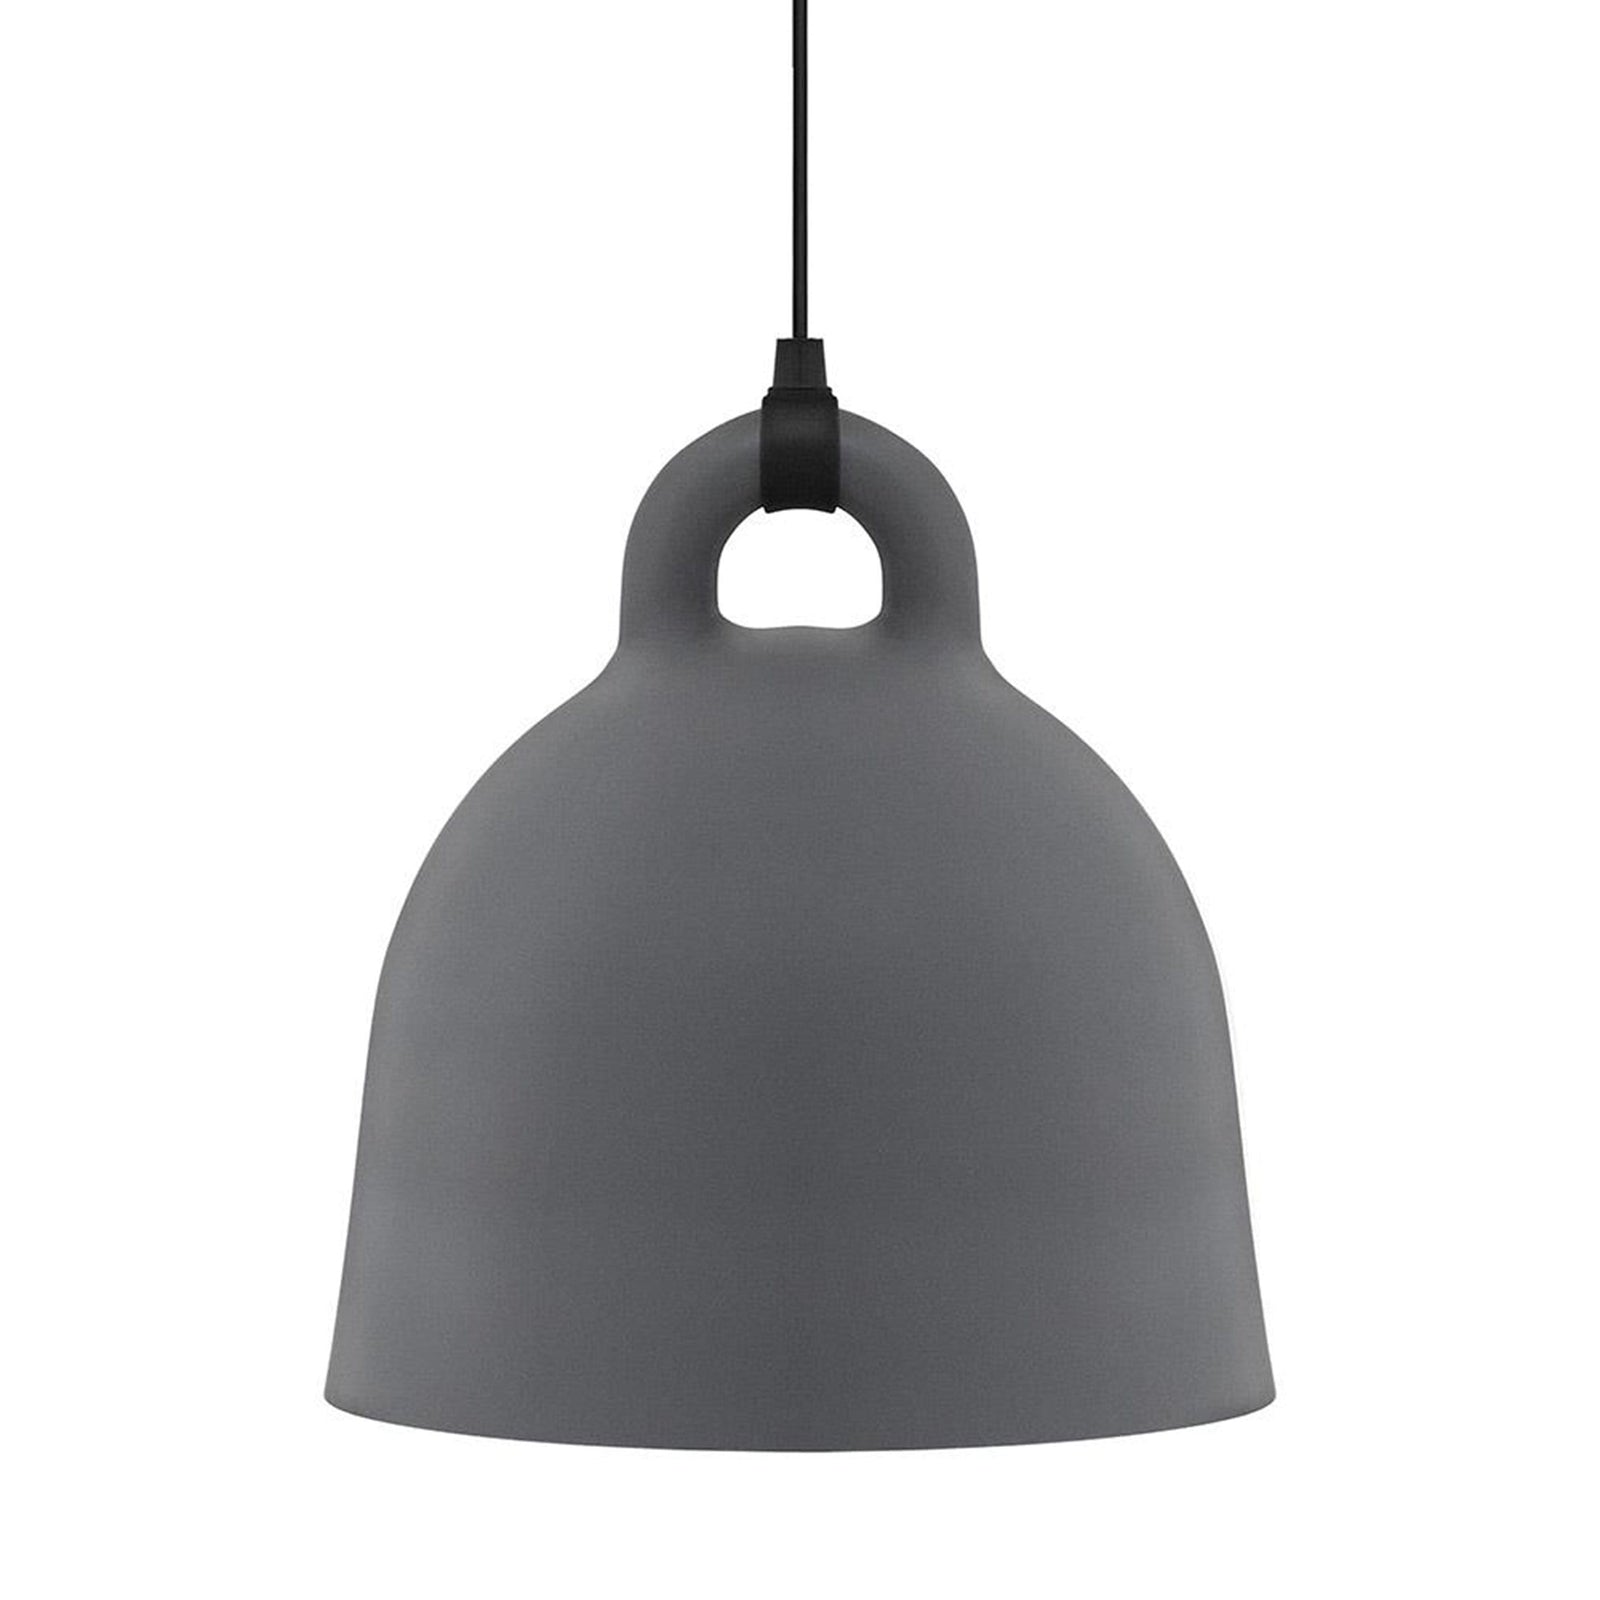 Norman Copenhagen Lighting Grey / Large Bell Lamp